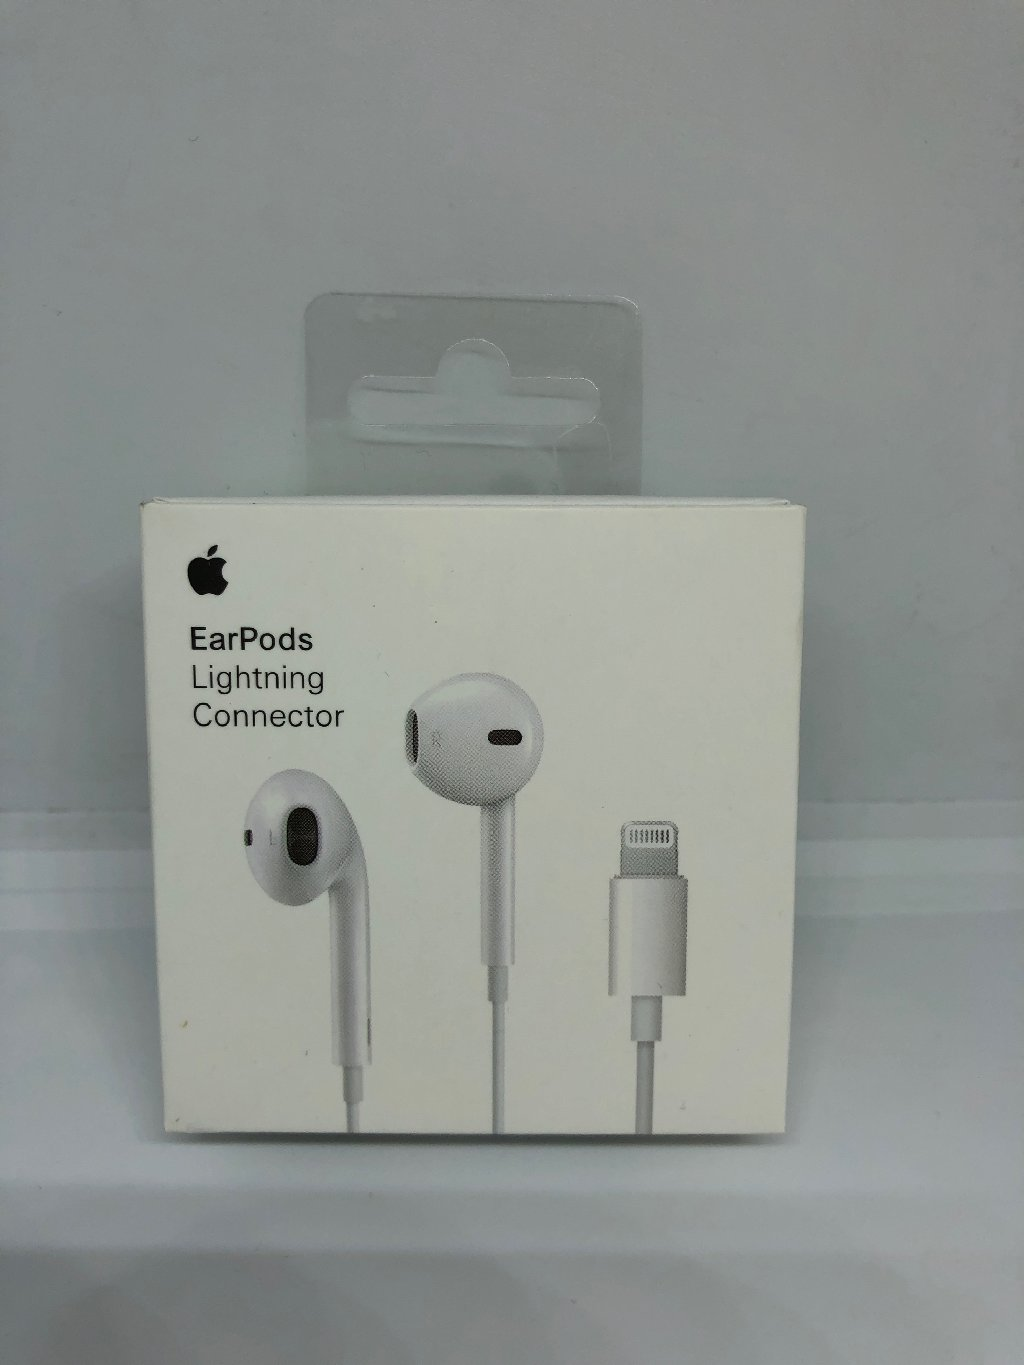 Наушники Apple EarPods White MMTN2ZM/A штекер(разъем) Lightning - Подходит для Apple: iPhone 5, IPhone 5c, IPhone 5s, IPhone 6, IPhone 6+, IPhone 6s, IPhone 6s Plus, IPhone 7, IPhone 7 Plus, IPhone 8, IPhone 8 Plus, IPhone X, IPhone XR, IPhone Xs, IPhone Xs Max, IPhone 11, IPhone 11Pro,IPhone 11Max, IPad Pro, IPad Mini 1/2/3/4/5, IPad Air 1/2